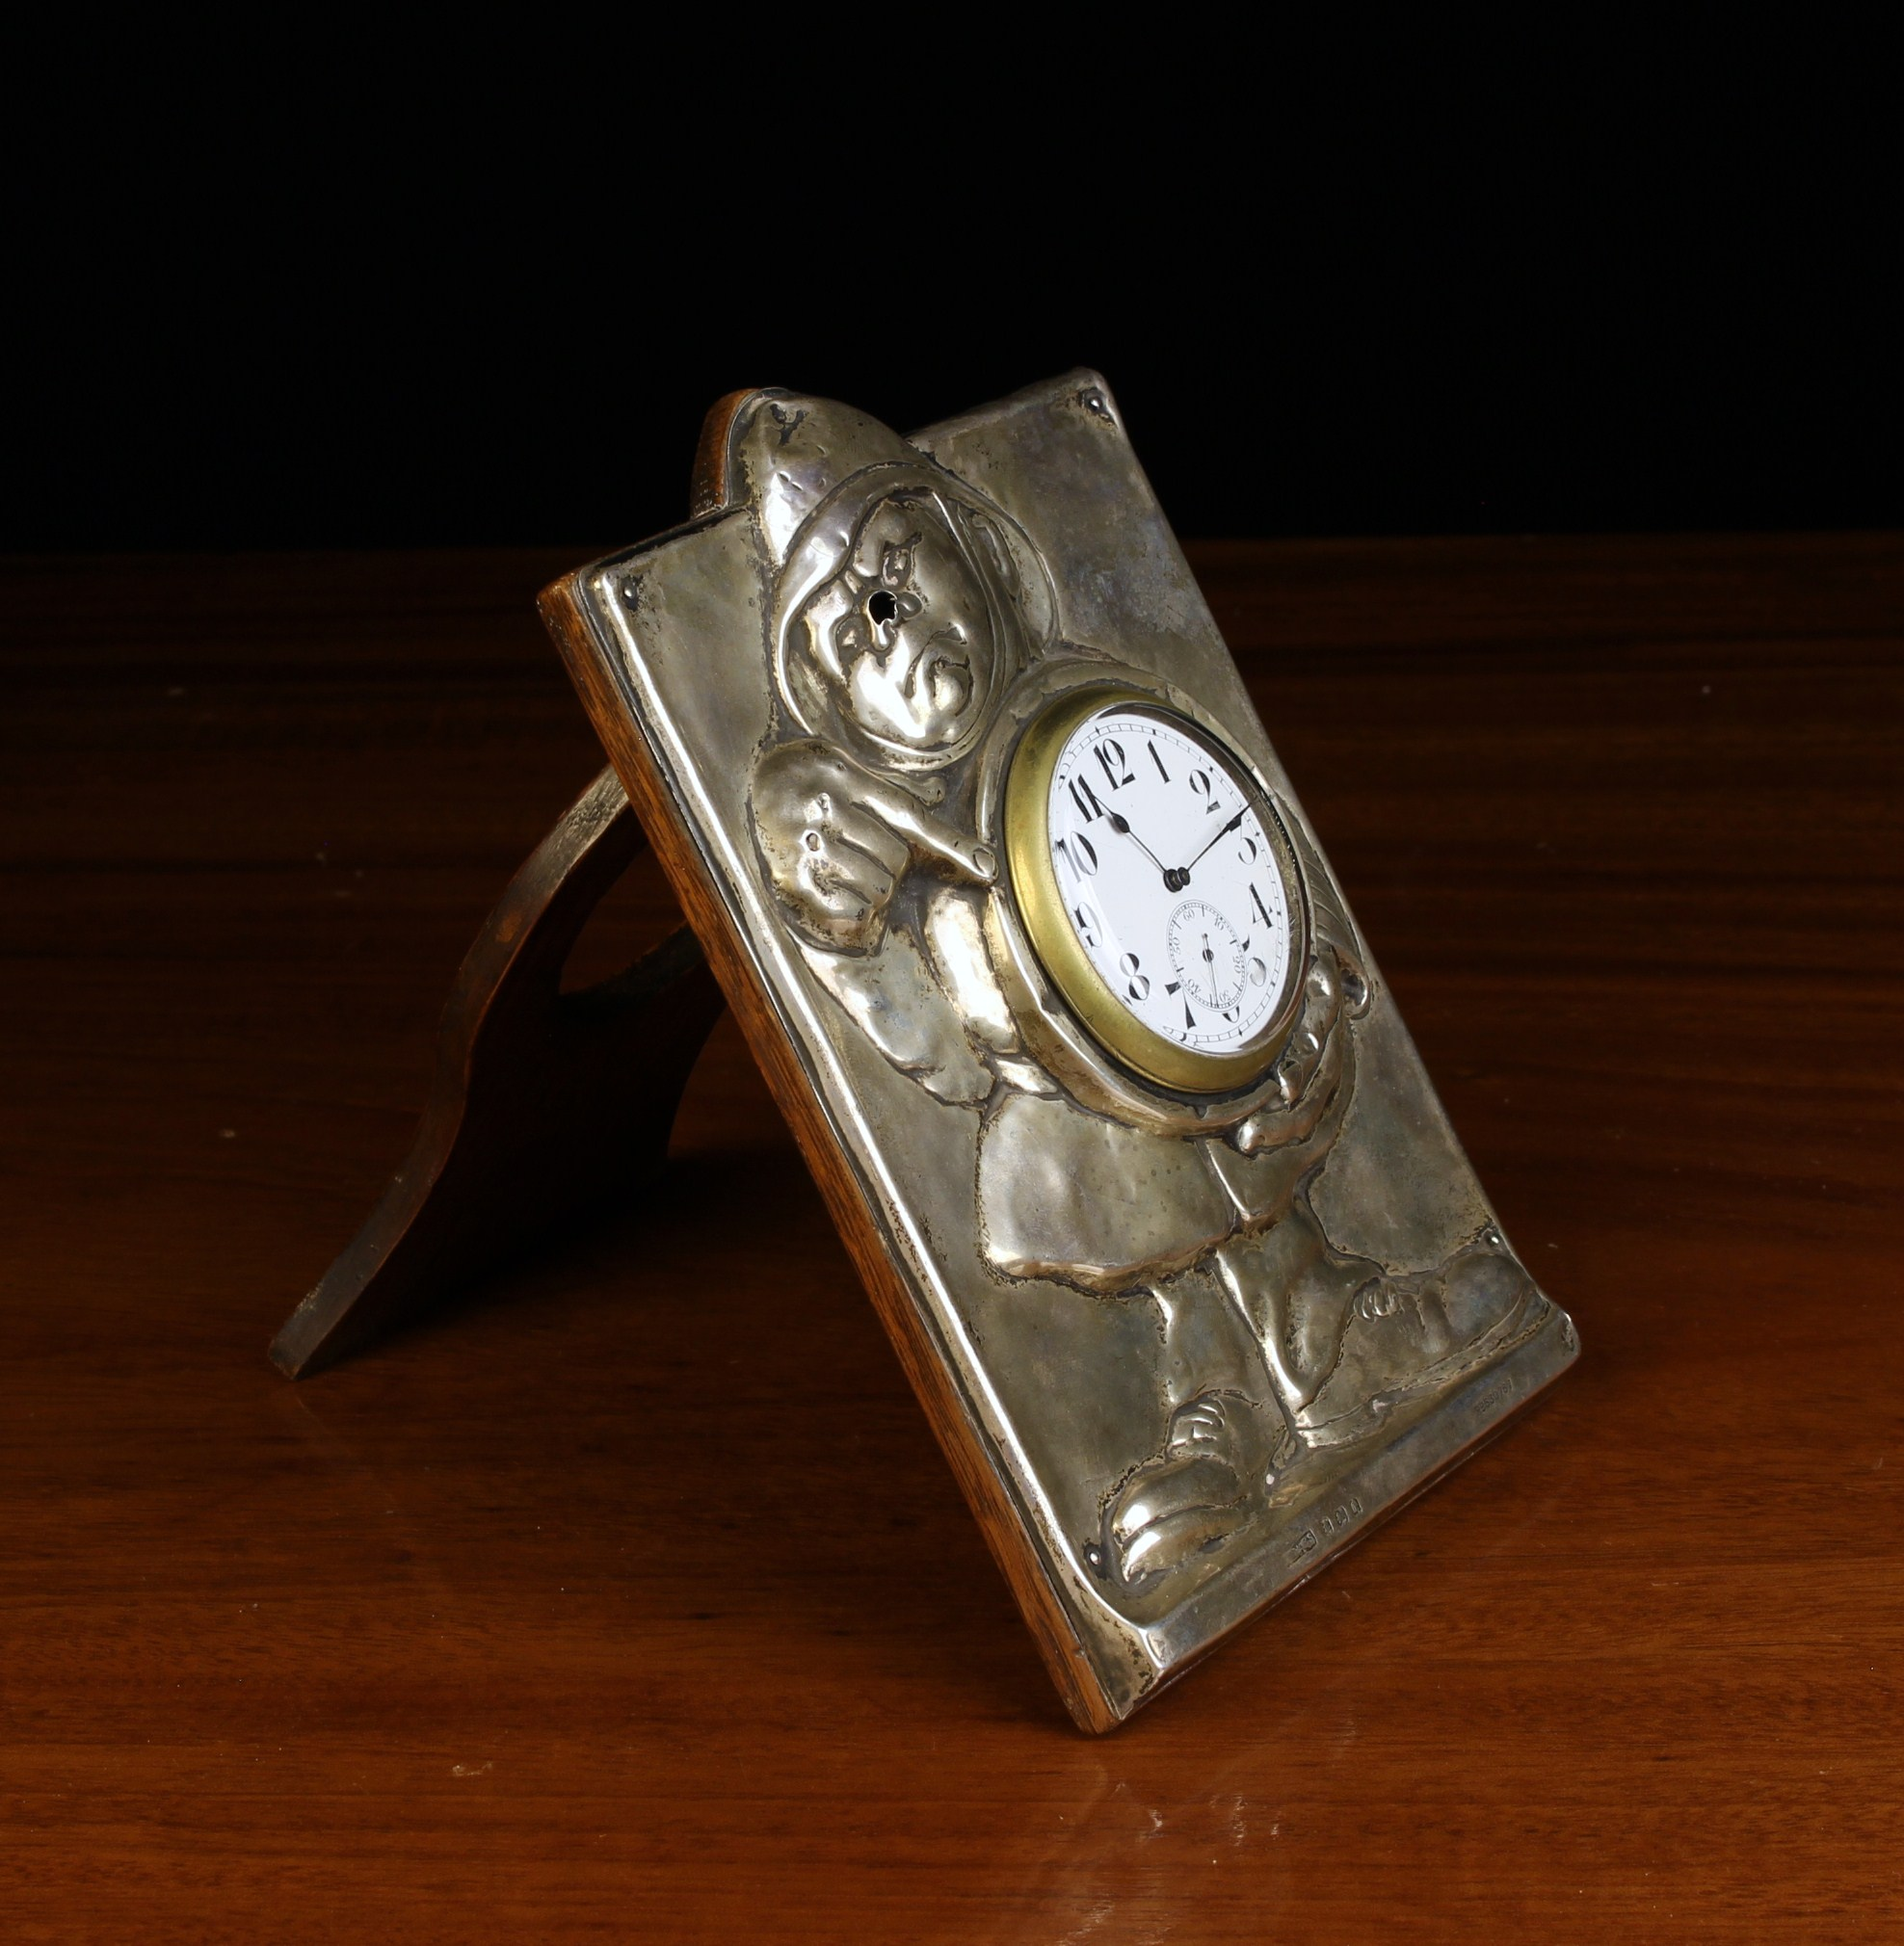 An Early 20th Century Novelty Silver Clad Strut Clock hallmarked Birmingham 1908 and numbered Rd - Image 2 of 2